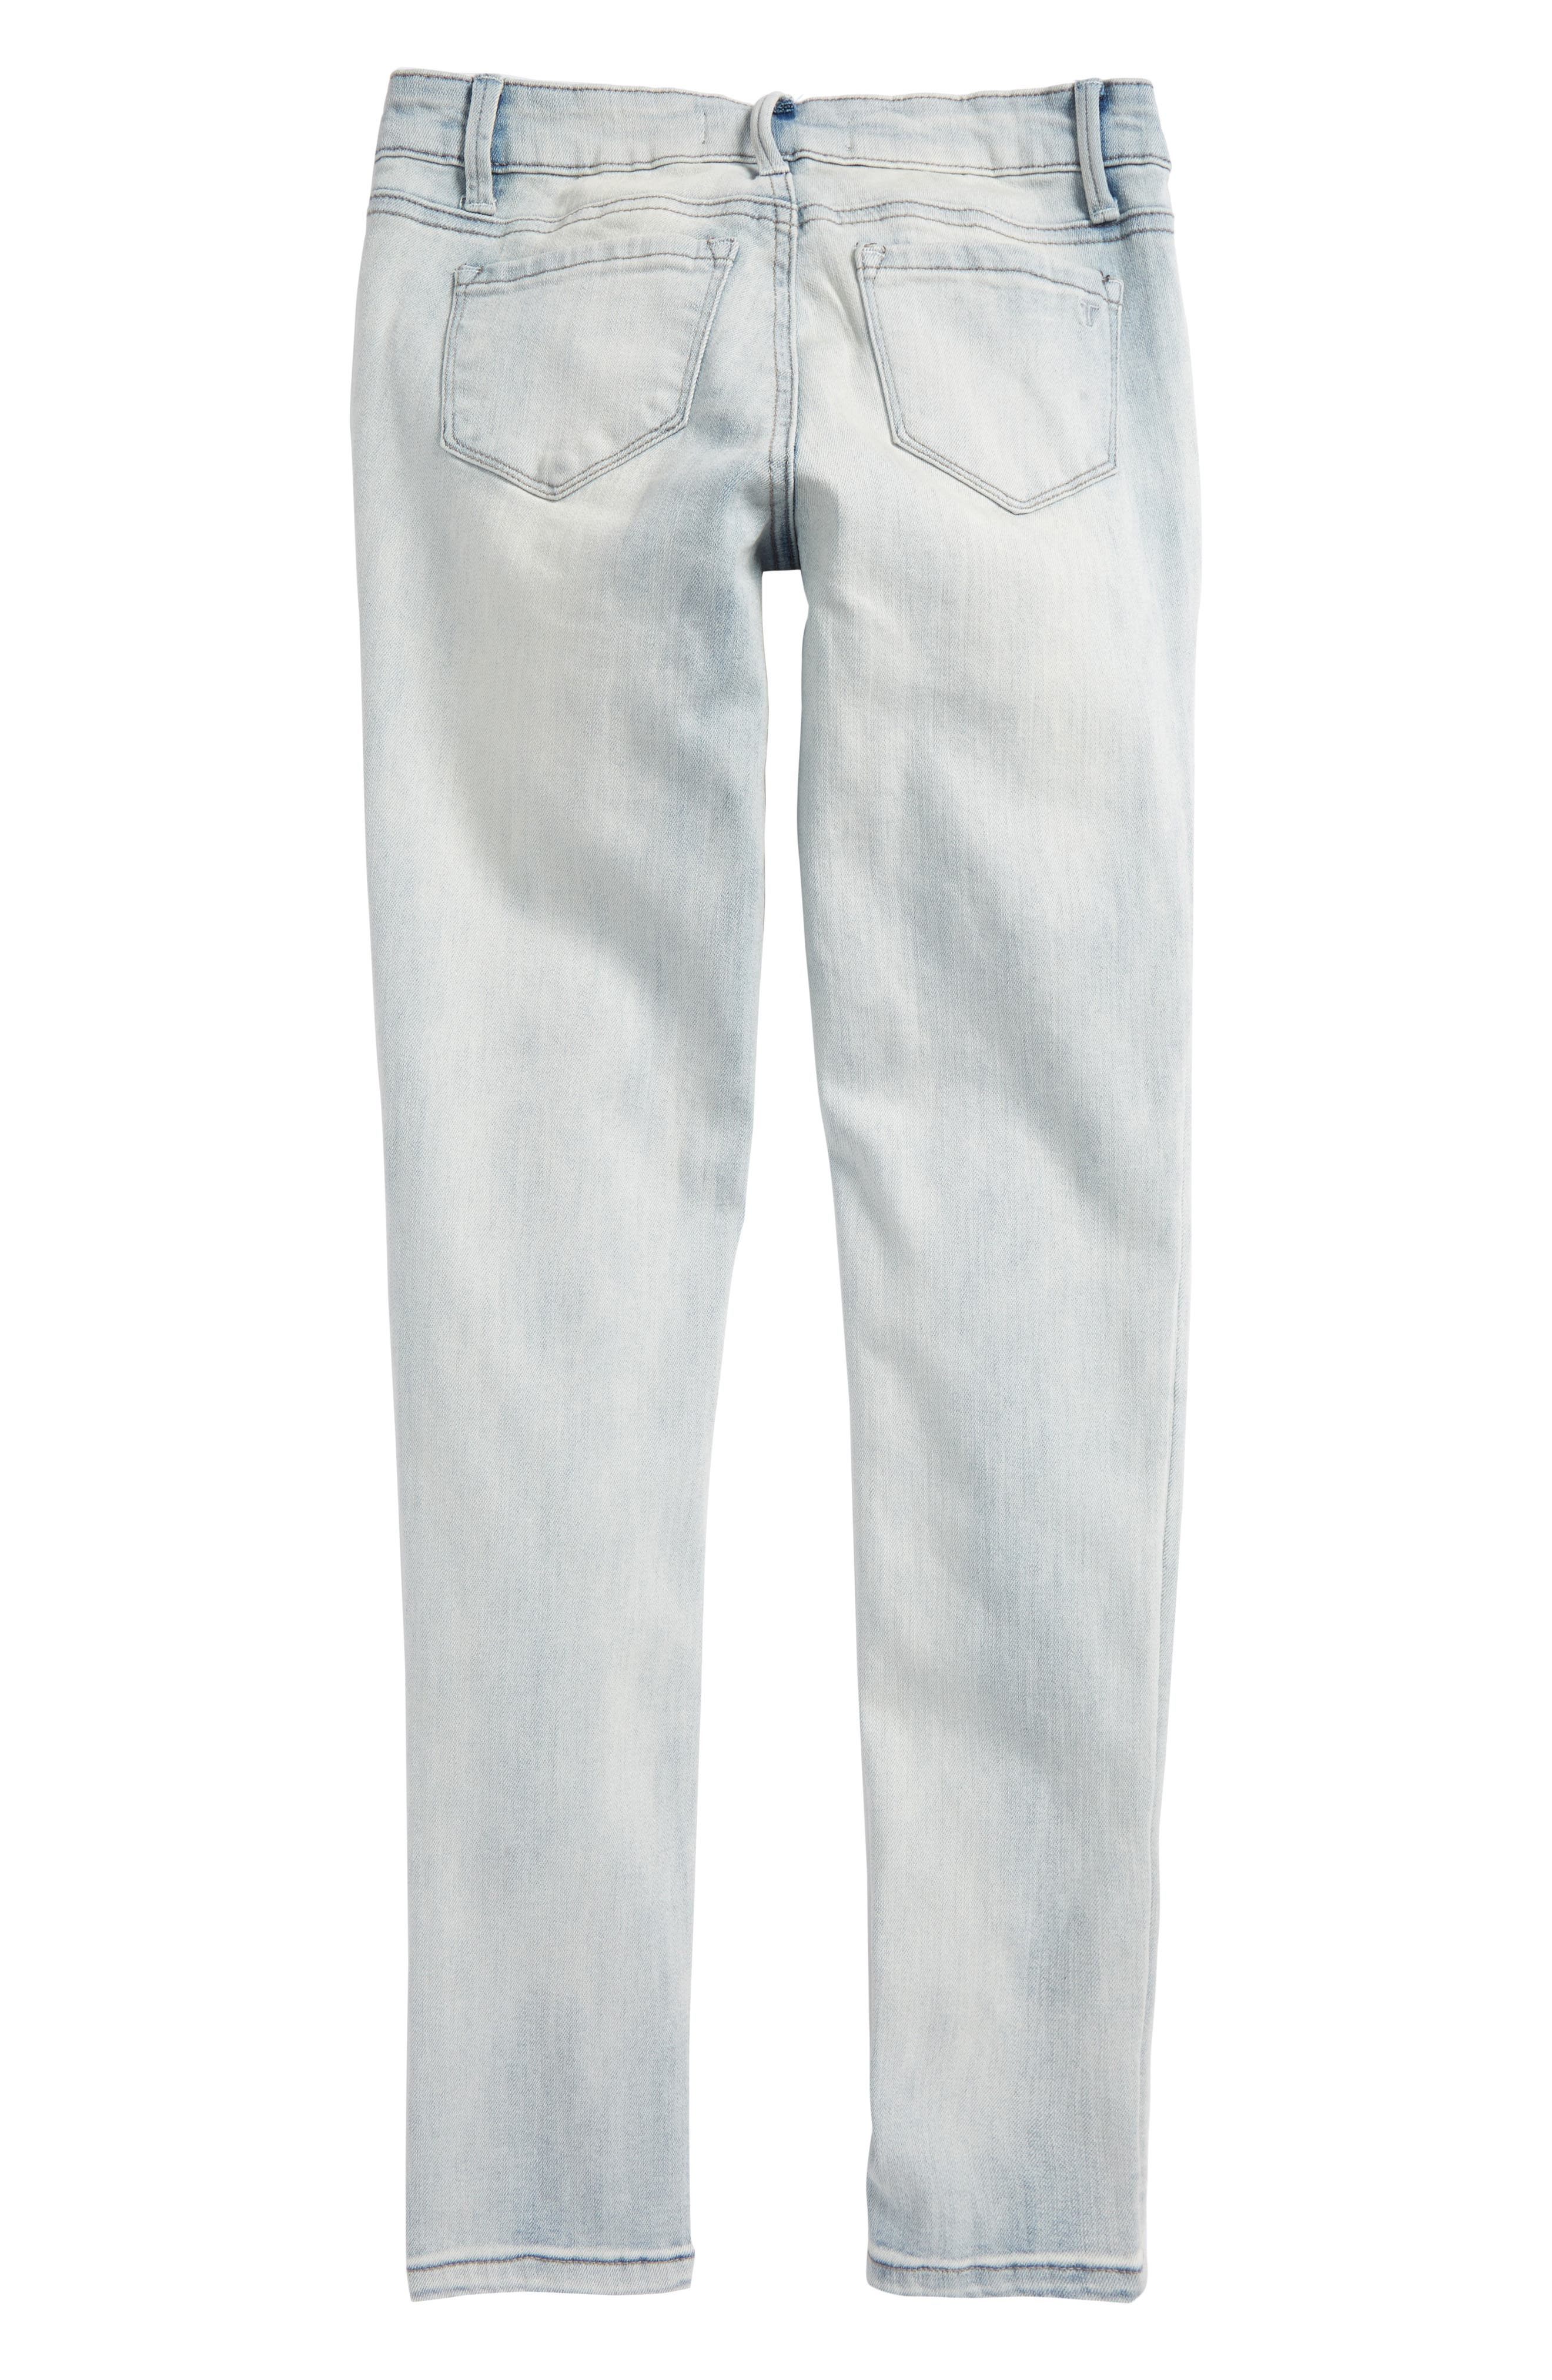 Ankle Crop Jeans,                             Alternate thumbnail 2, color,                             Light Blue